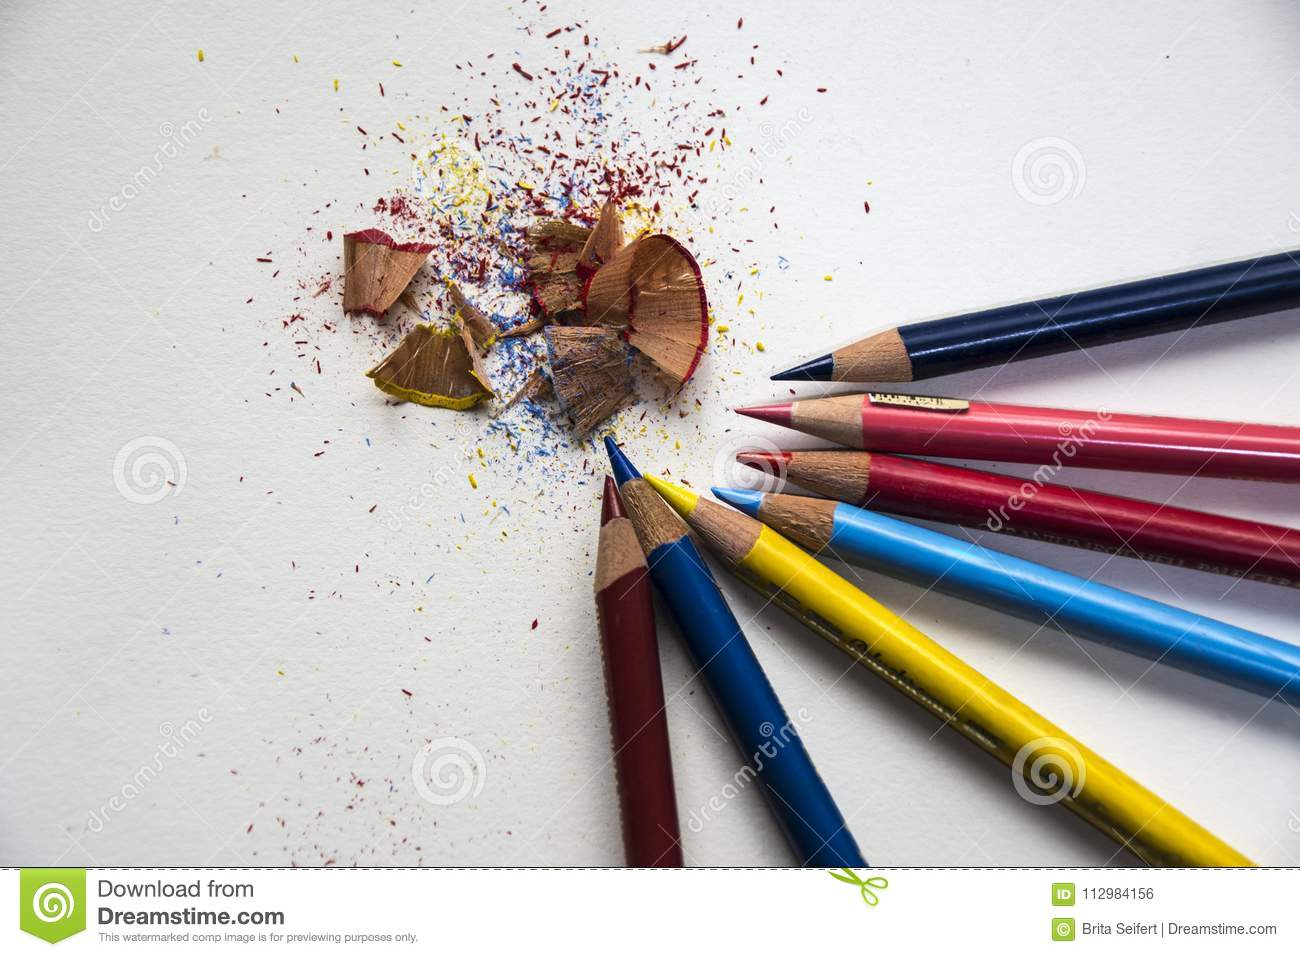 Colored pencils with colorful pencil shavings